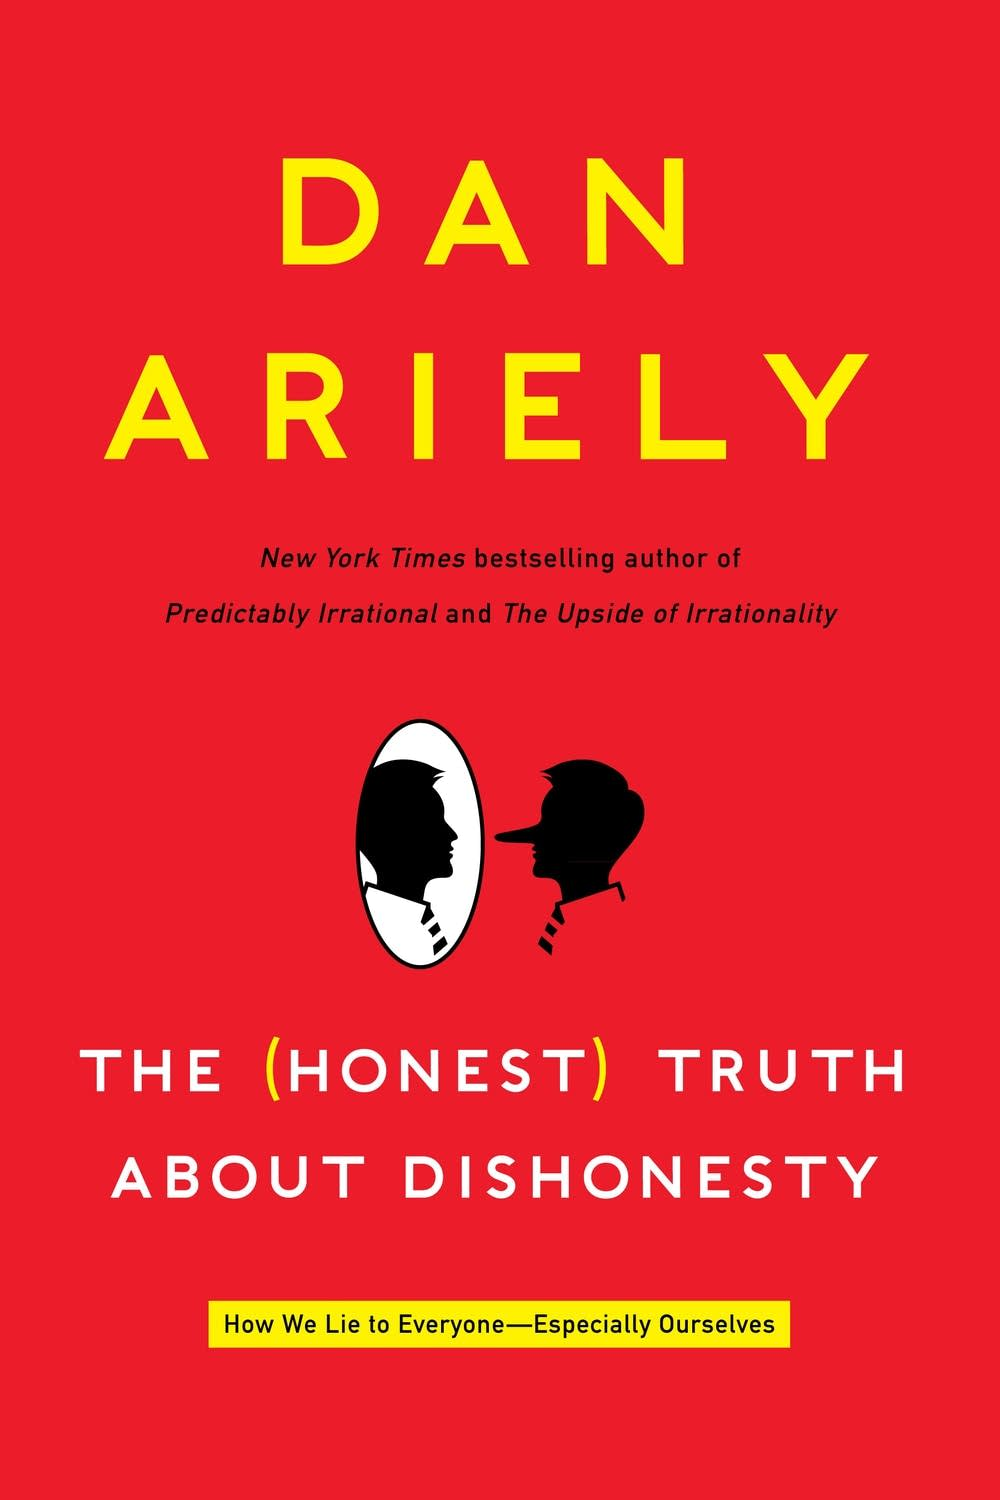 'The Honest Truth About Dishonesty' by Dan Ariely